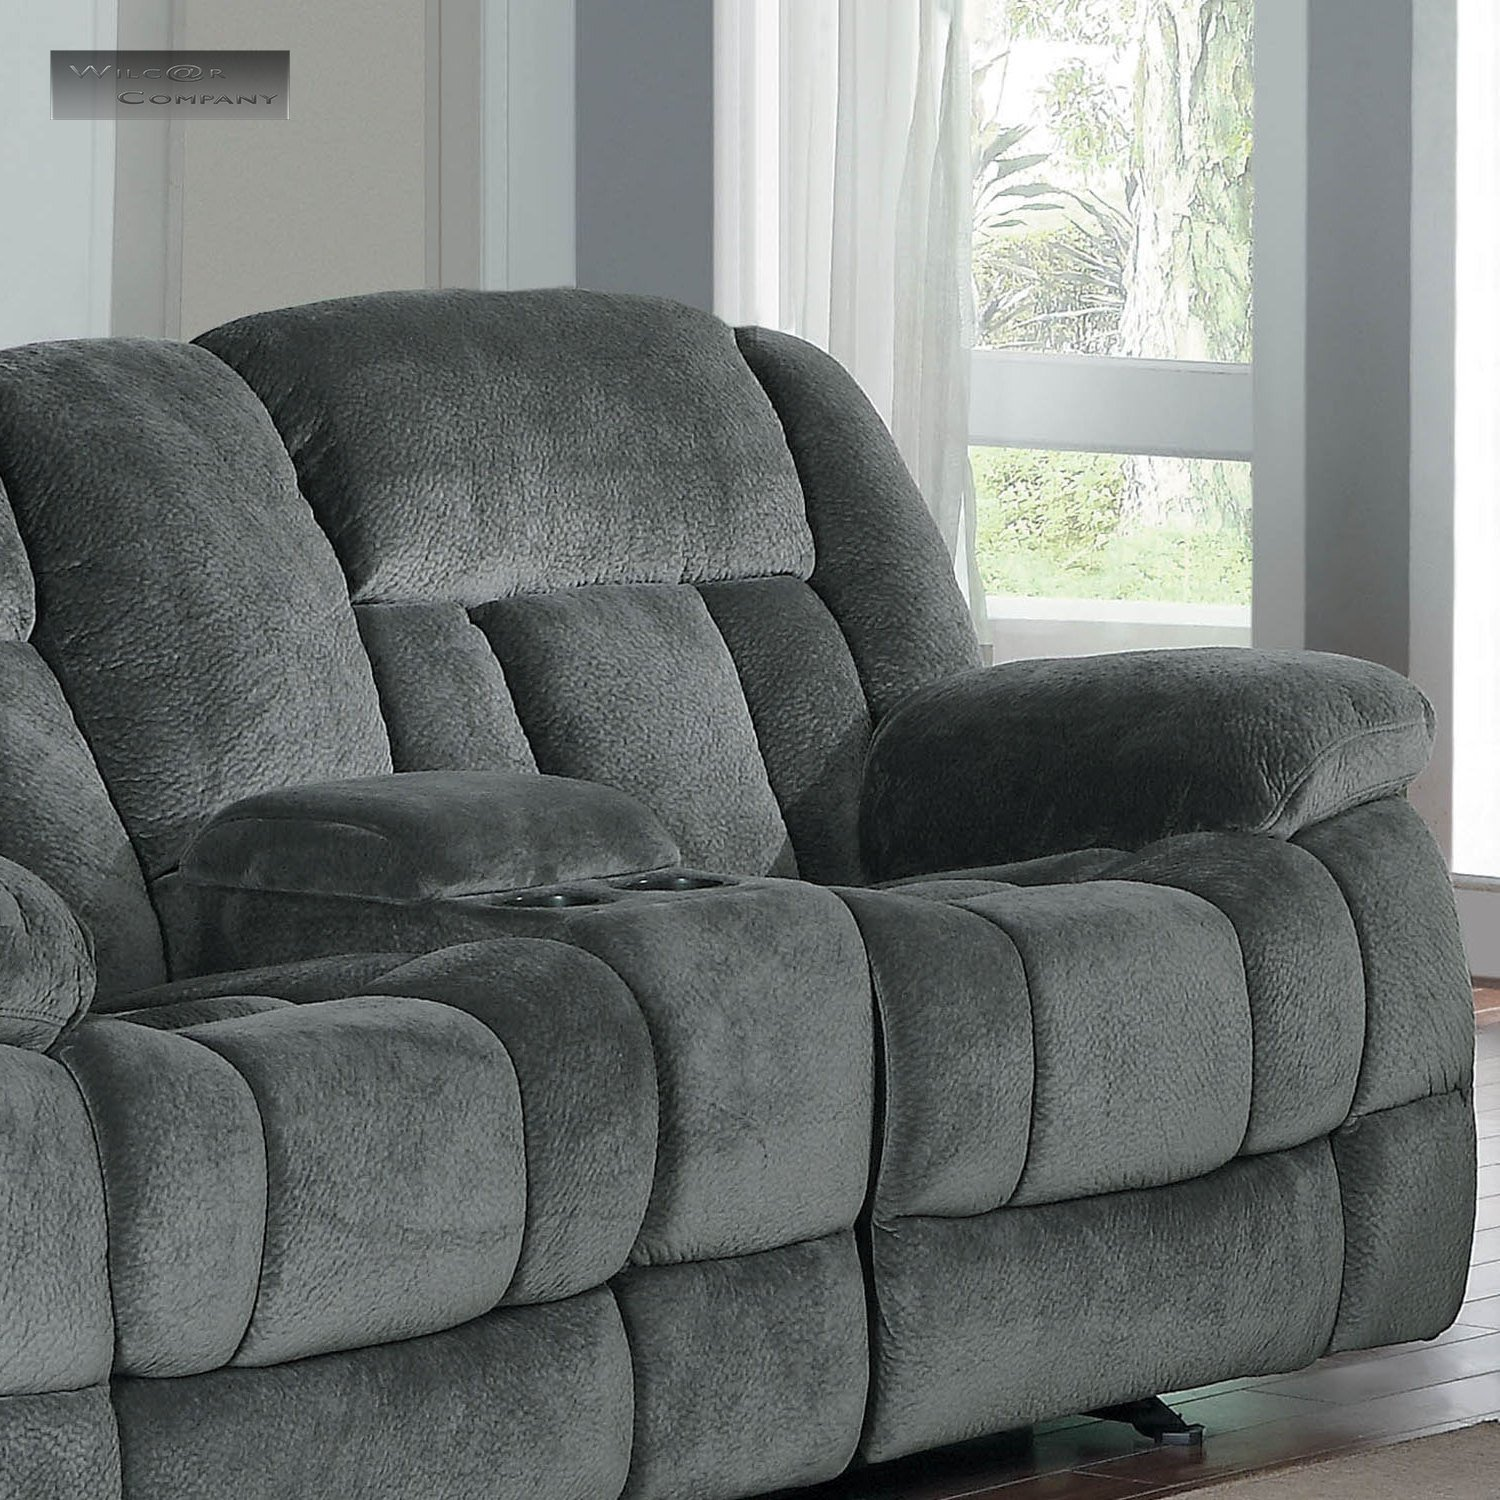 New Grey Rocker Glider Double Recliner Loveseat Lazy Sofa Rocking Recl Wilc R Online Shopping